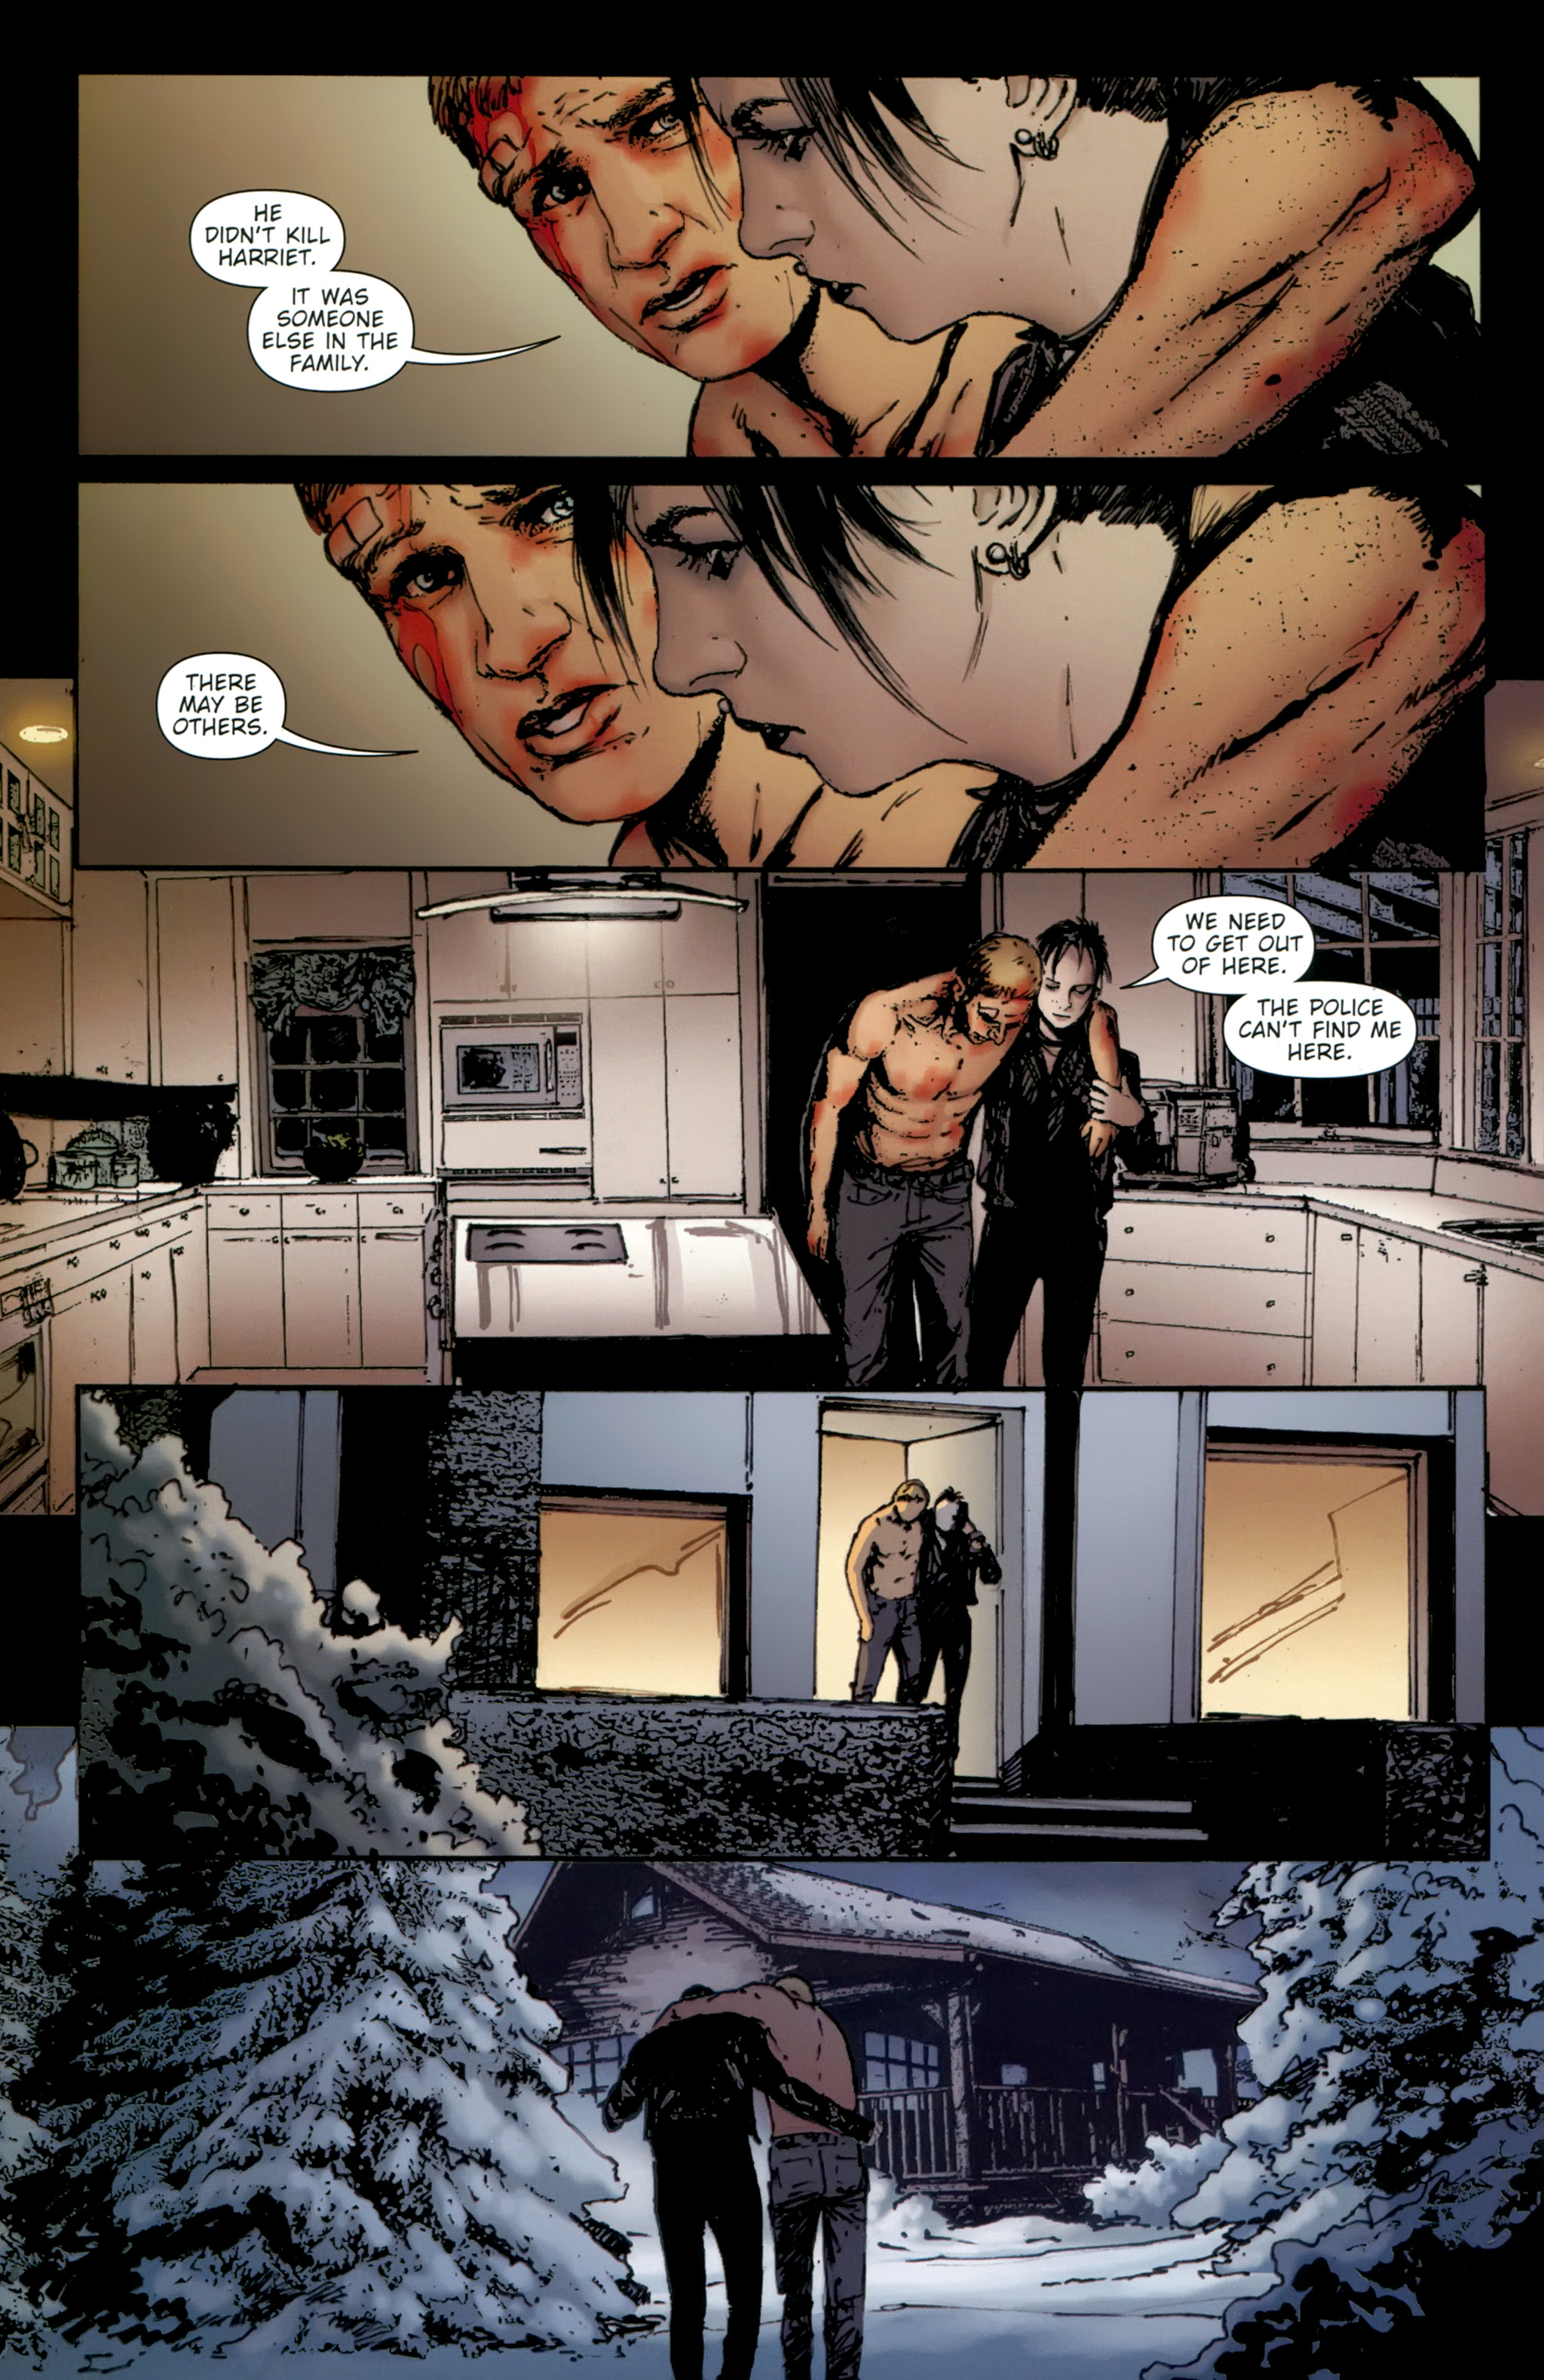 Read online The Girl With the Dragon Tattoo comic -  Issue # TPB 2 - 110